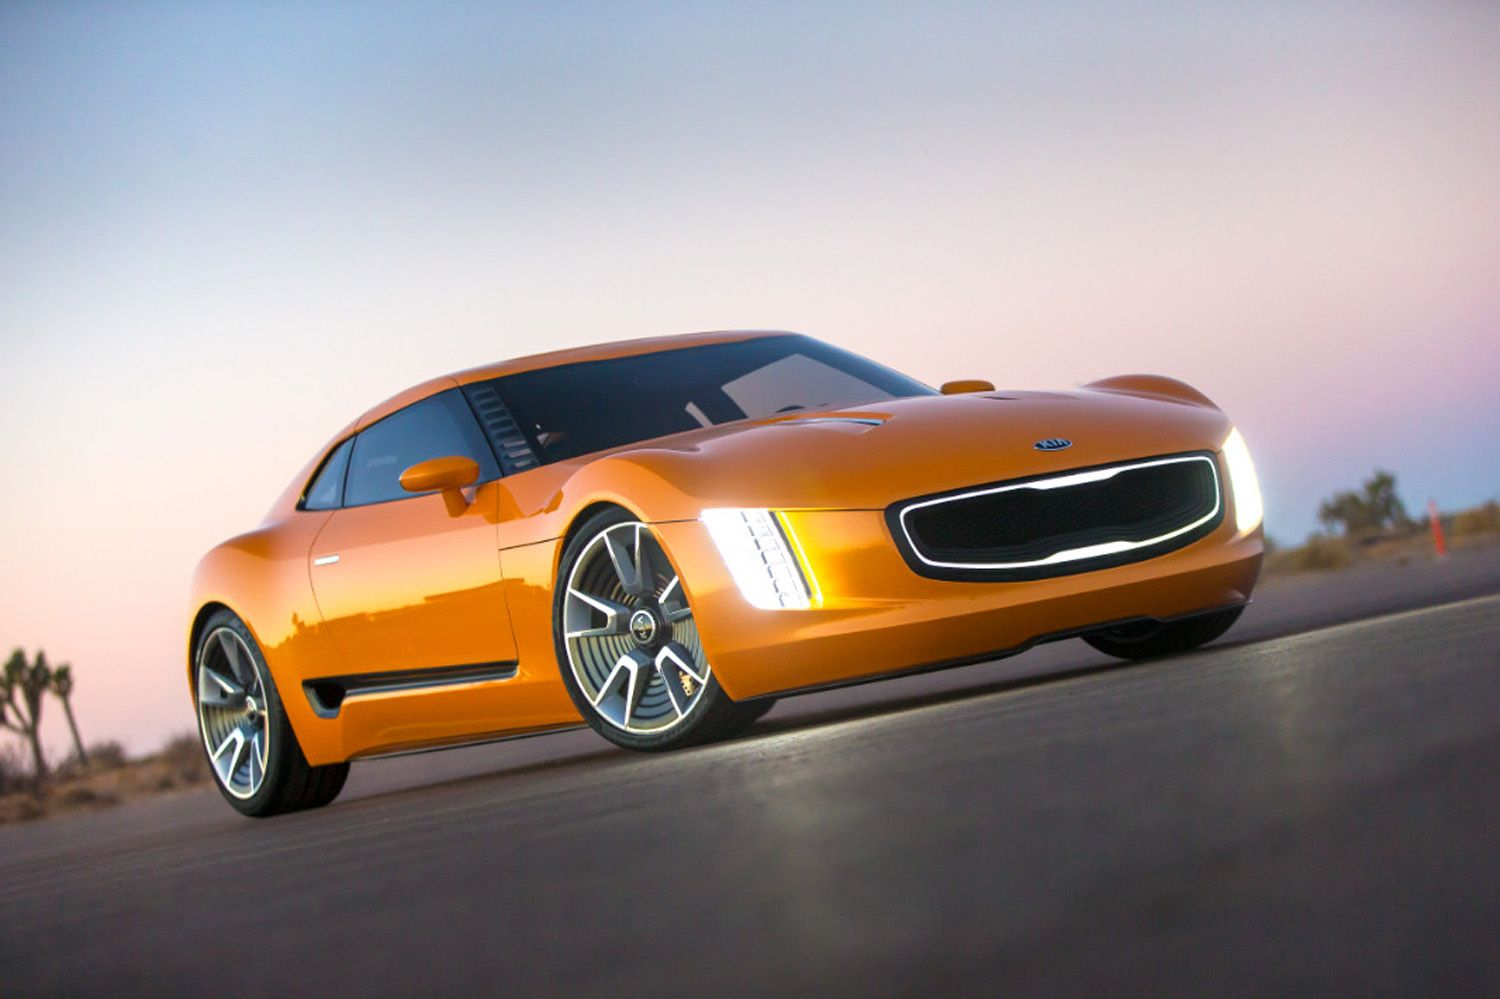 This gorgeous ferocious sports car is a kia